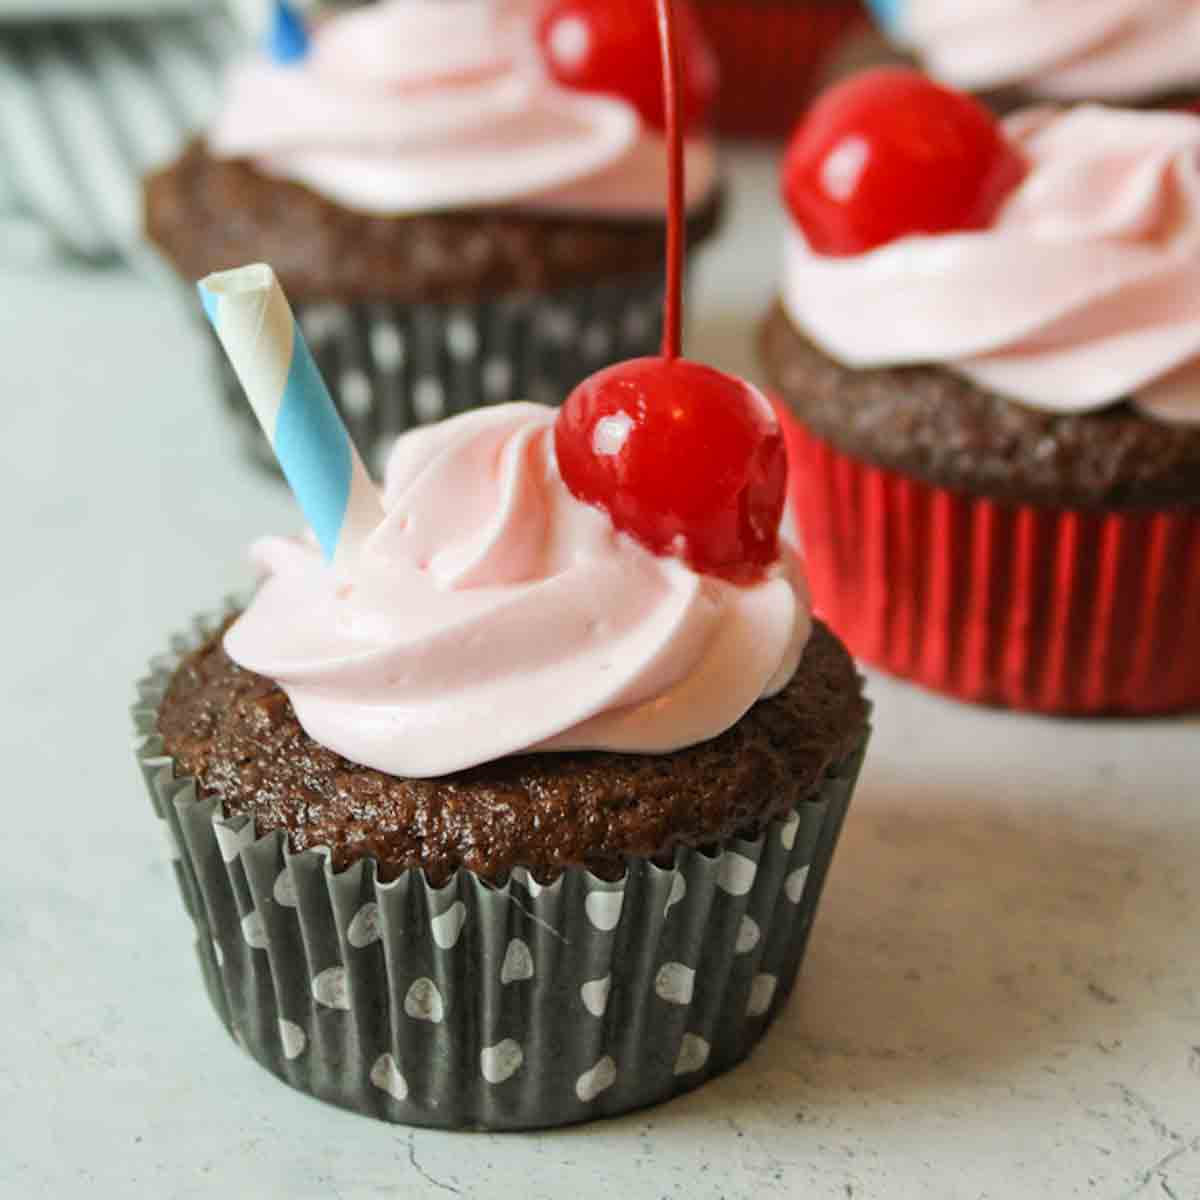 a close up of a cherry coke cupcake with cherry and straw for garnish